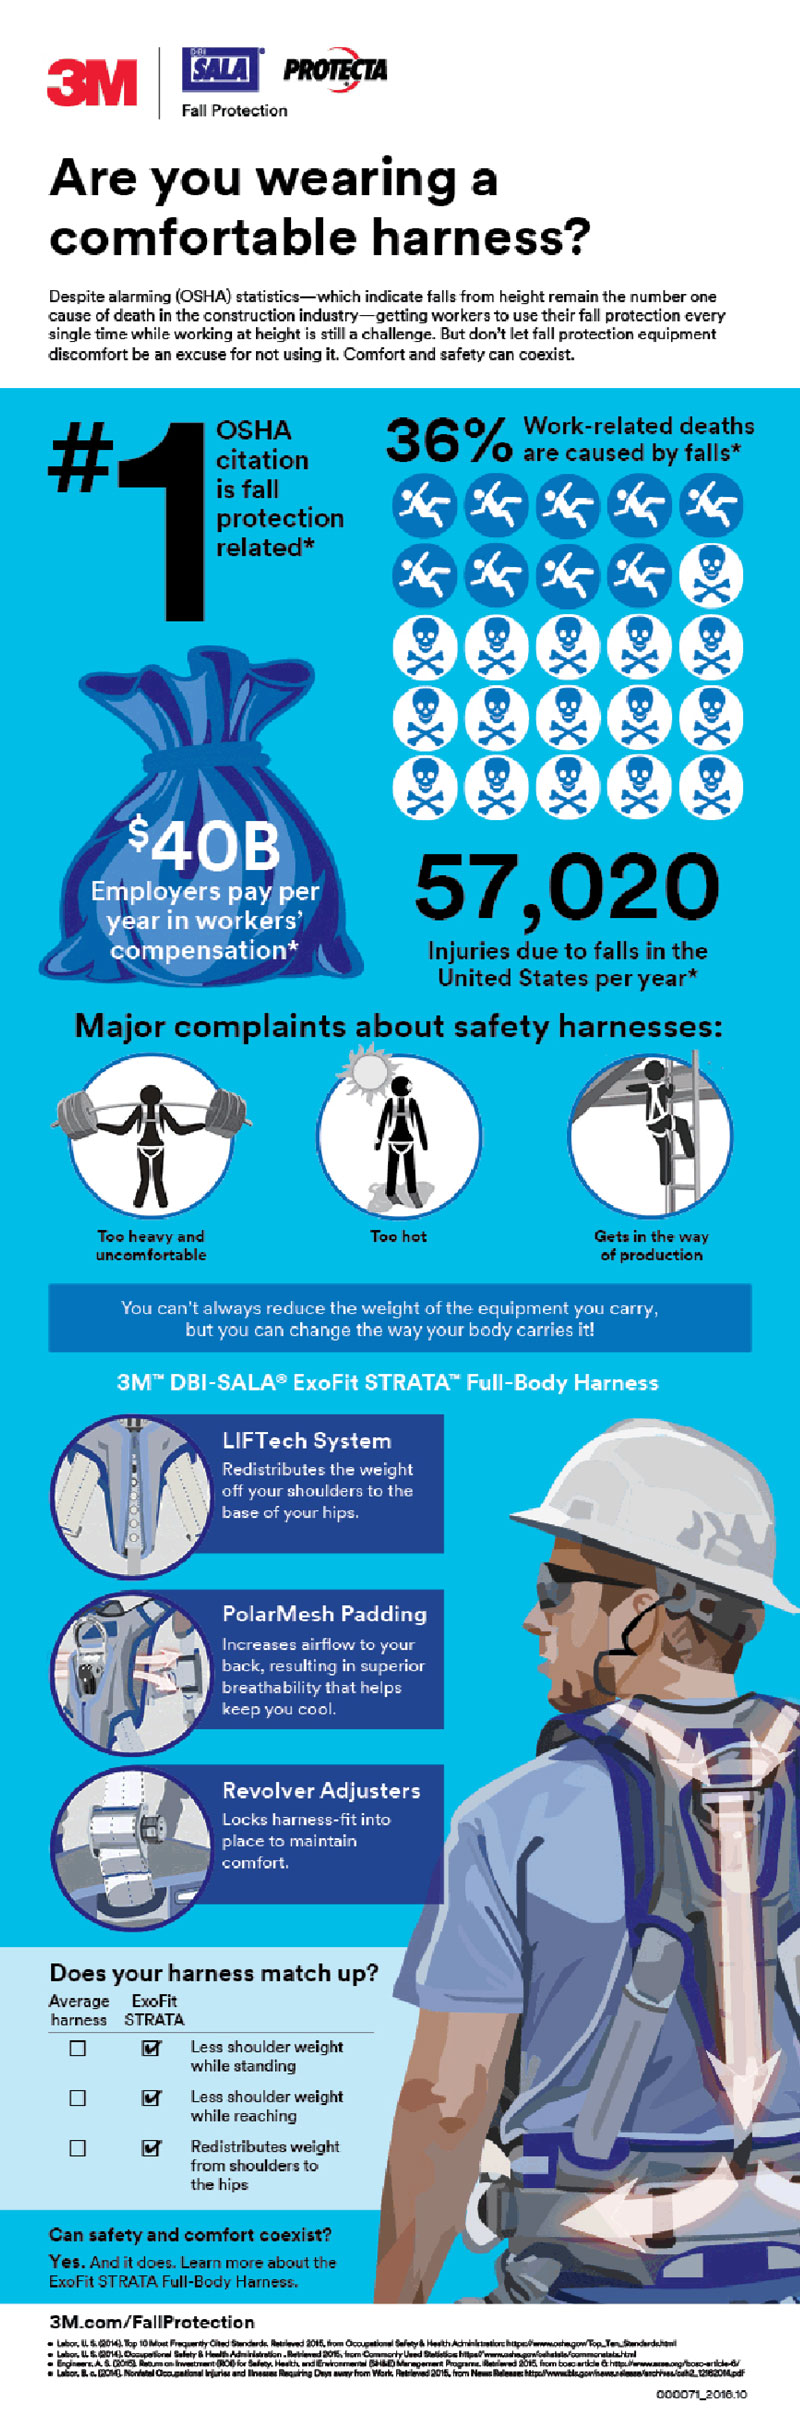 safety-harness-fall-protection-ppe